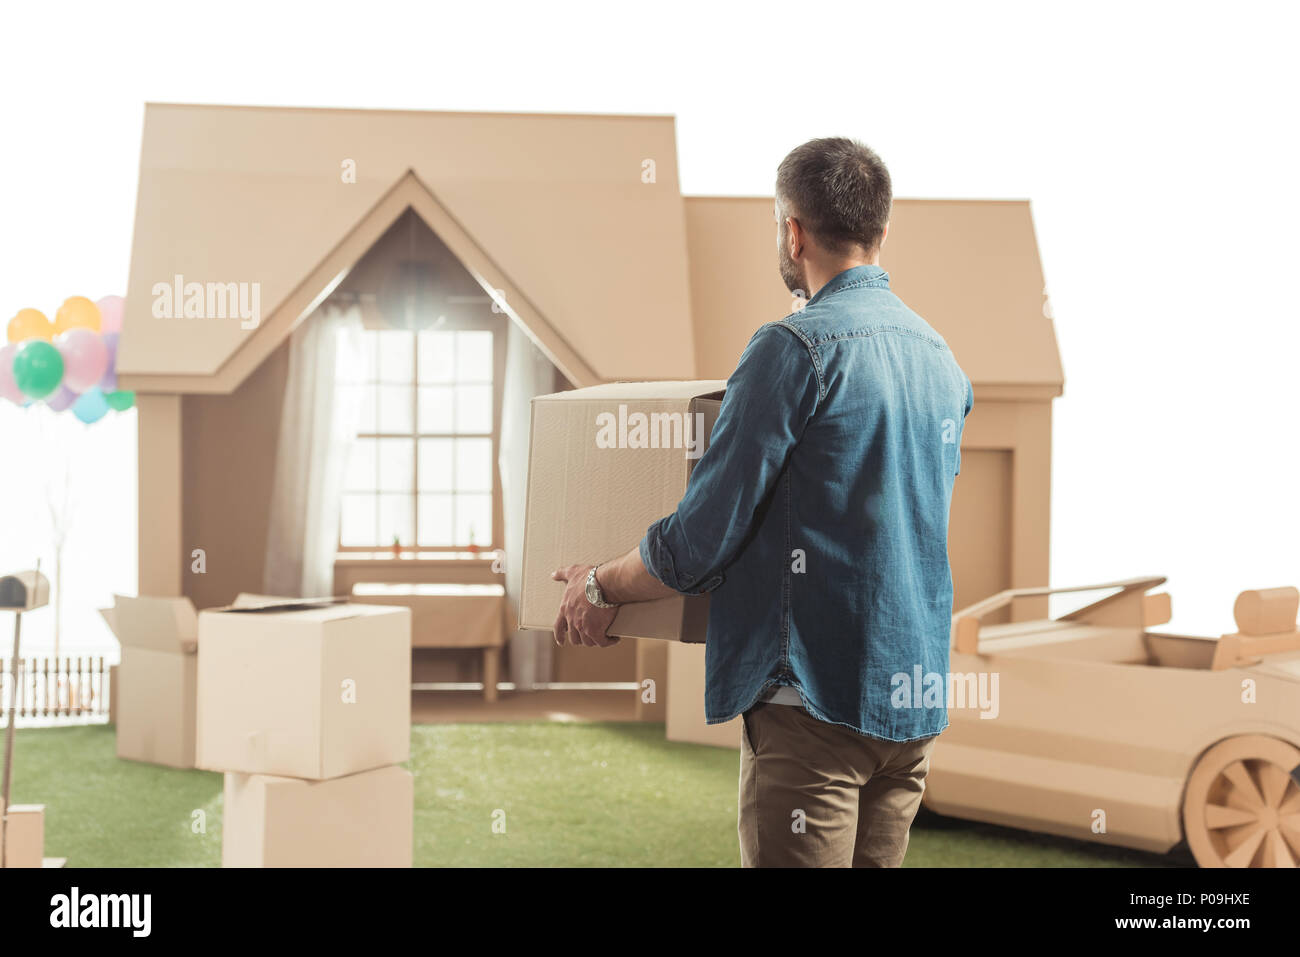 man with boxes moving into new cardboard house isolated on